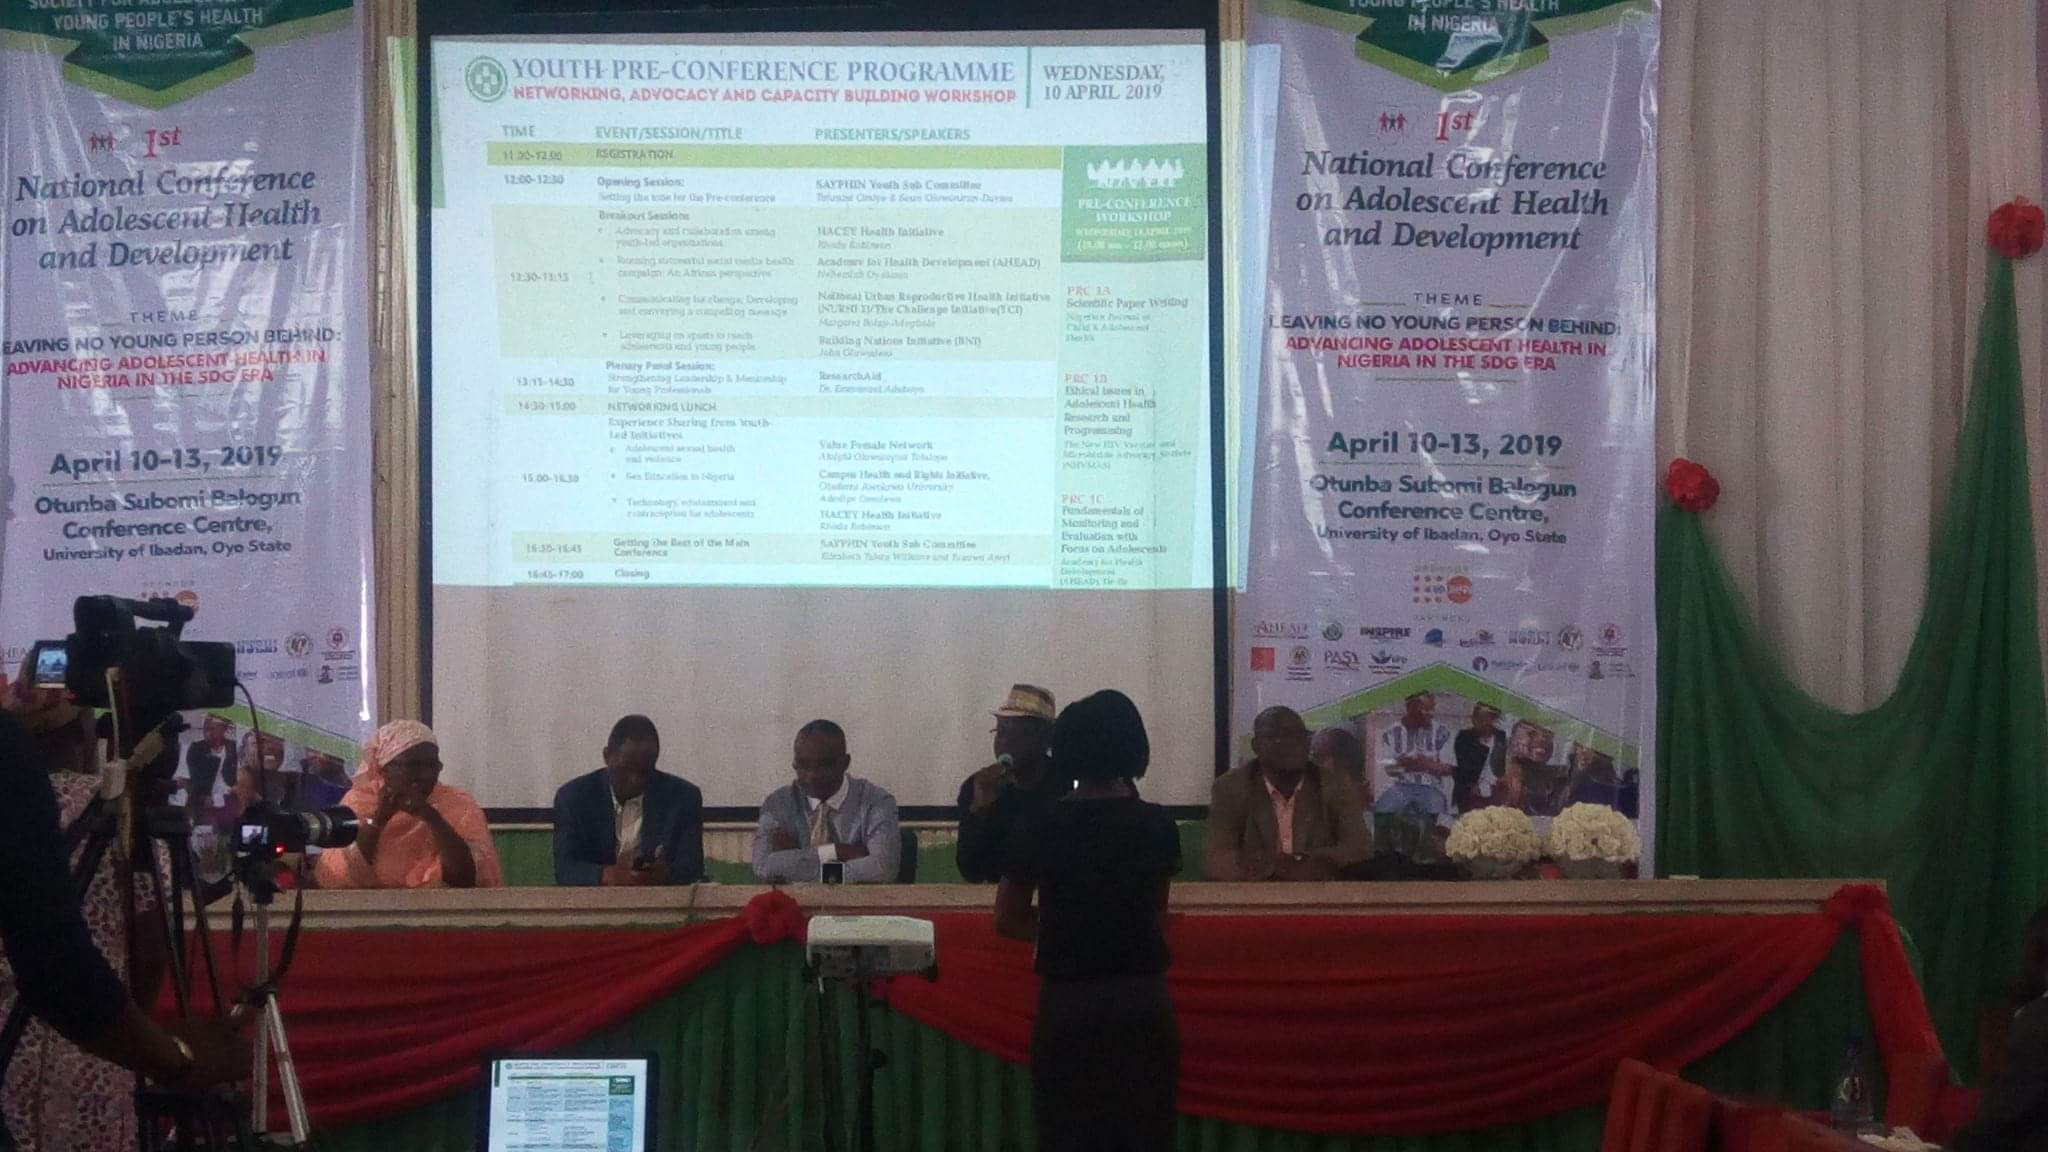 IYJ | Nigeria's First National Conference on Adolescent